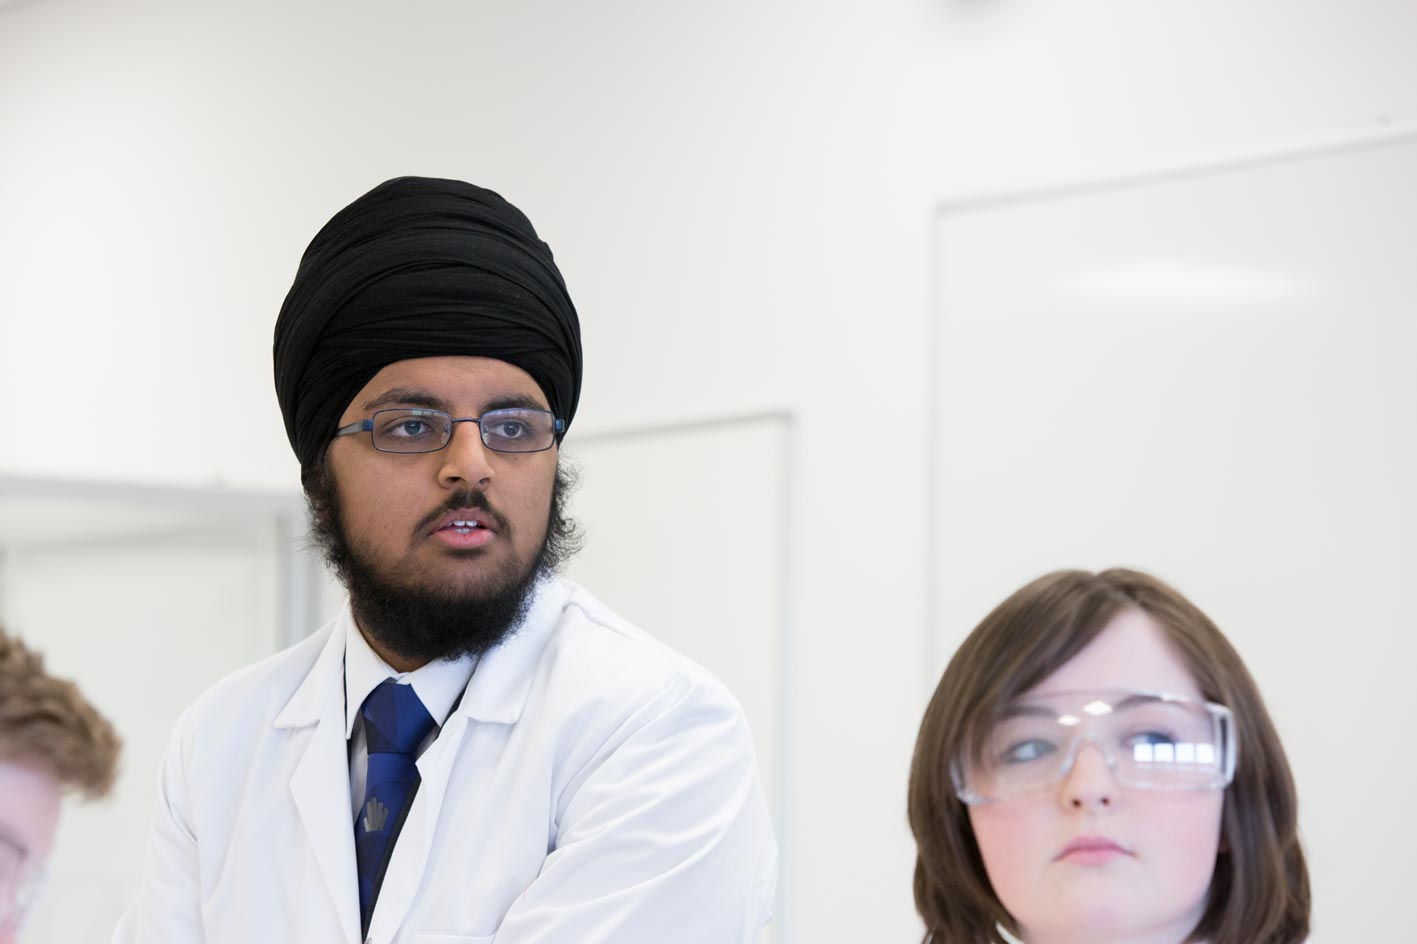 Young sikh in science lab